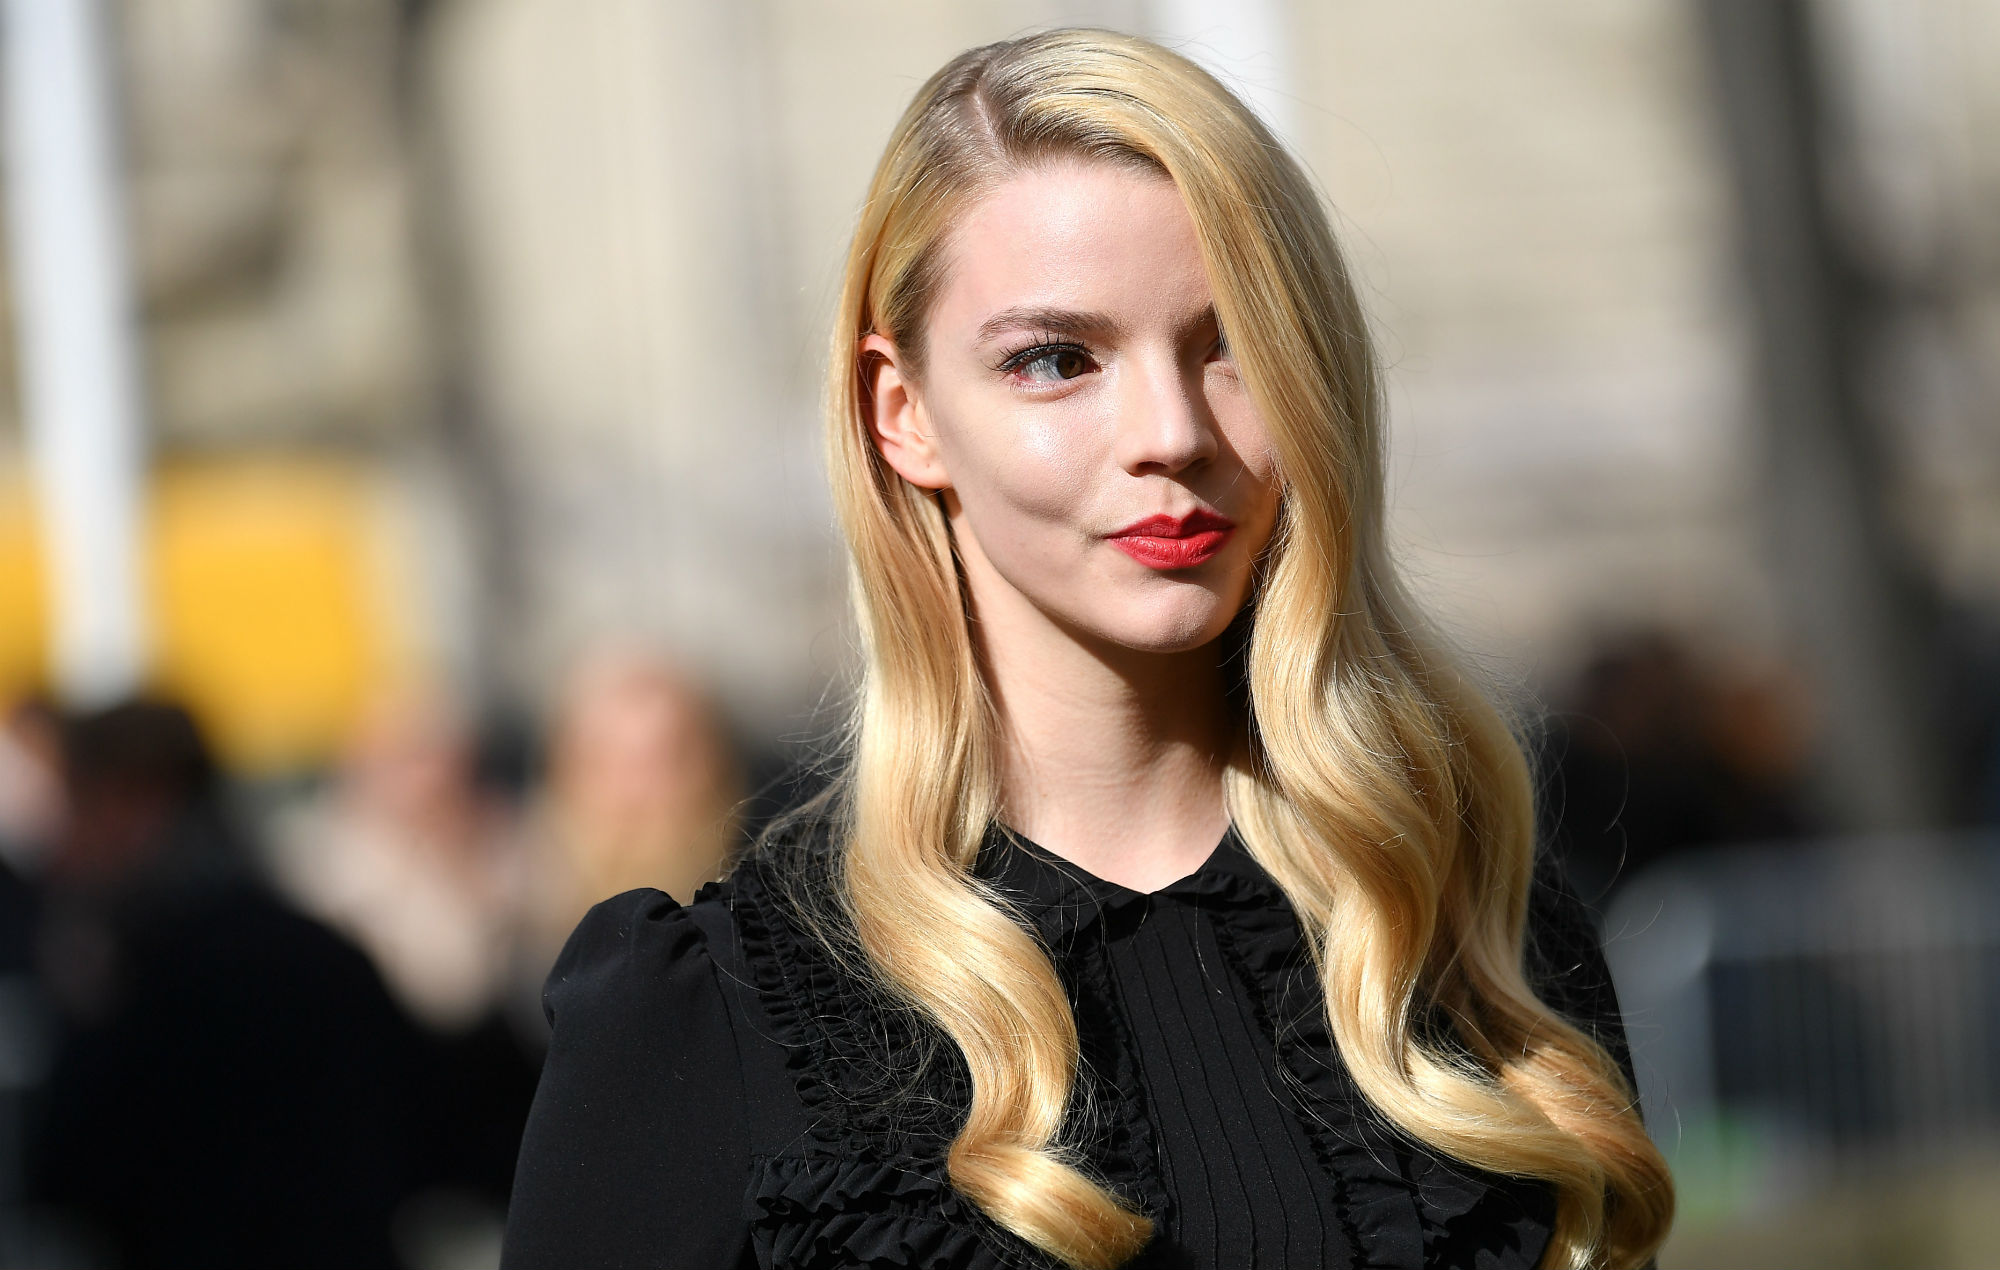 Anya Taylor Joy Watched Lord Of The Rings Trilogy On Christmas Day